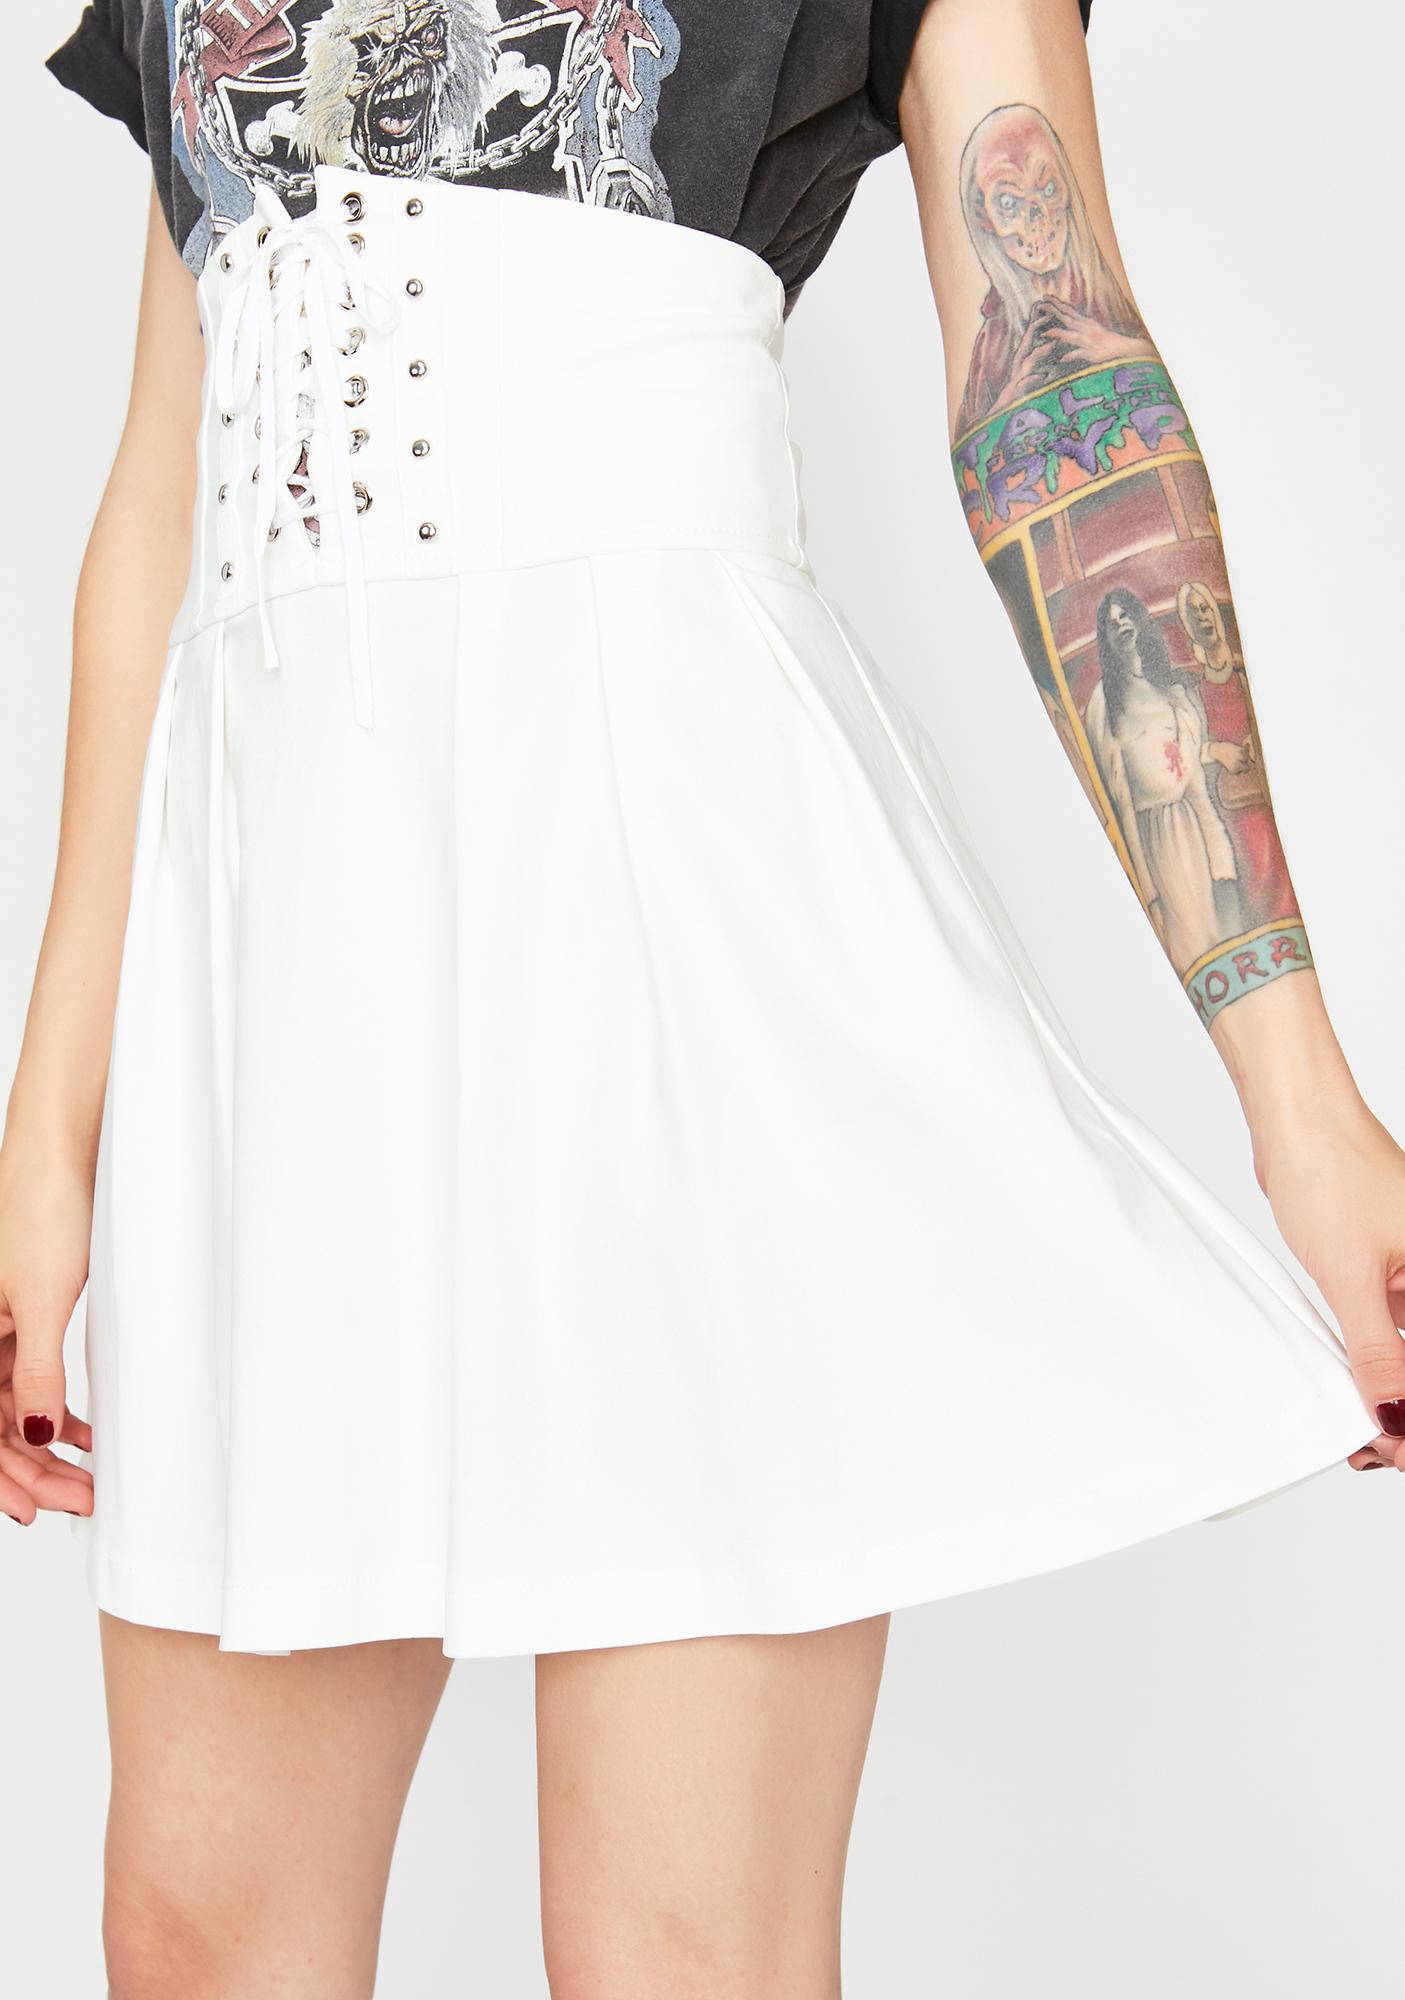 Fatally Obsessed Lace Up Skirt